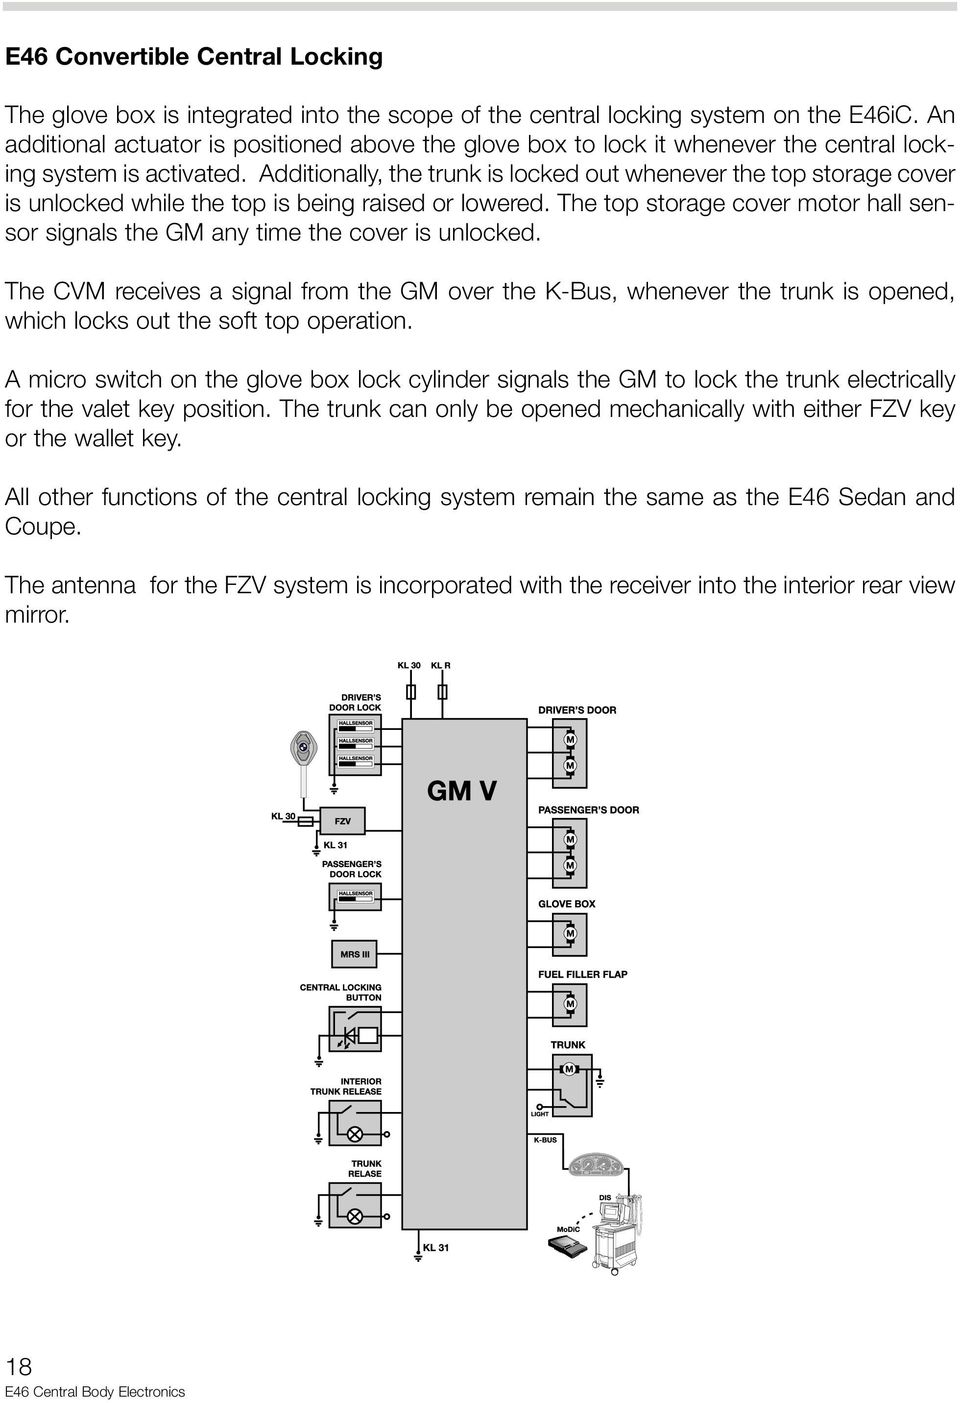 Bmw E46 Central Locking Wiring DiagramWiring Diagram